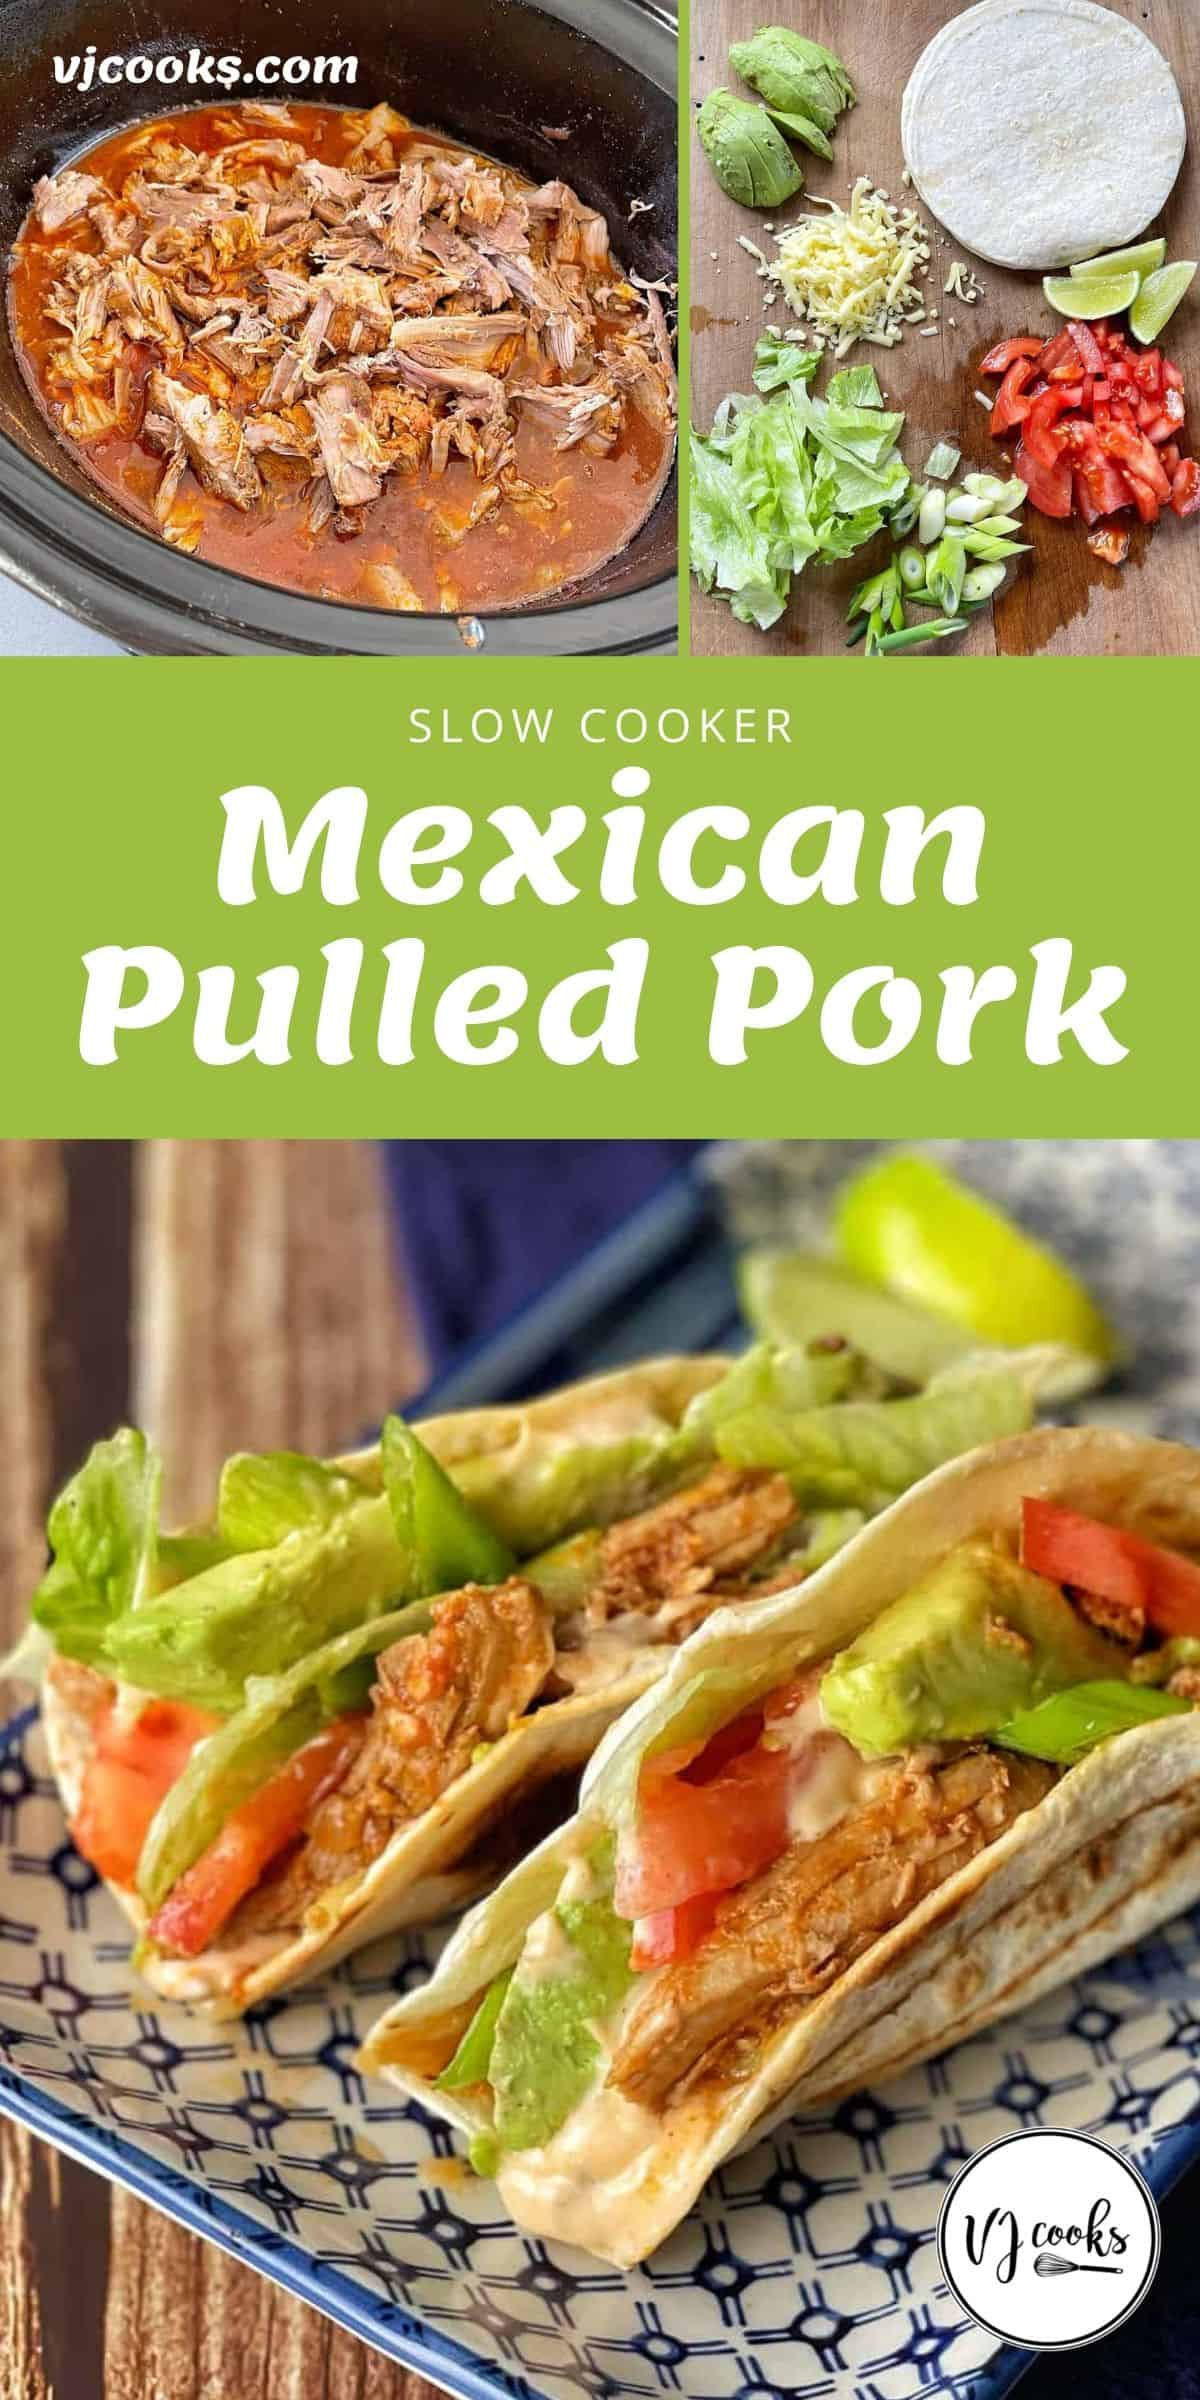 The process of making Slow Cooker Mexican Pulled Pork tortillas